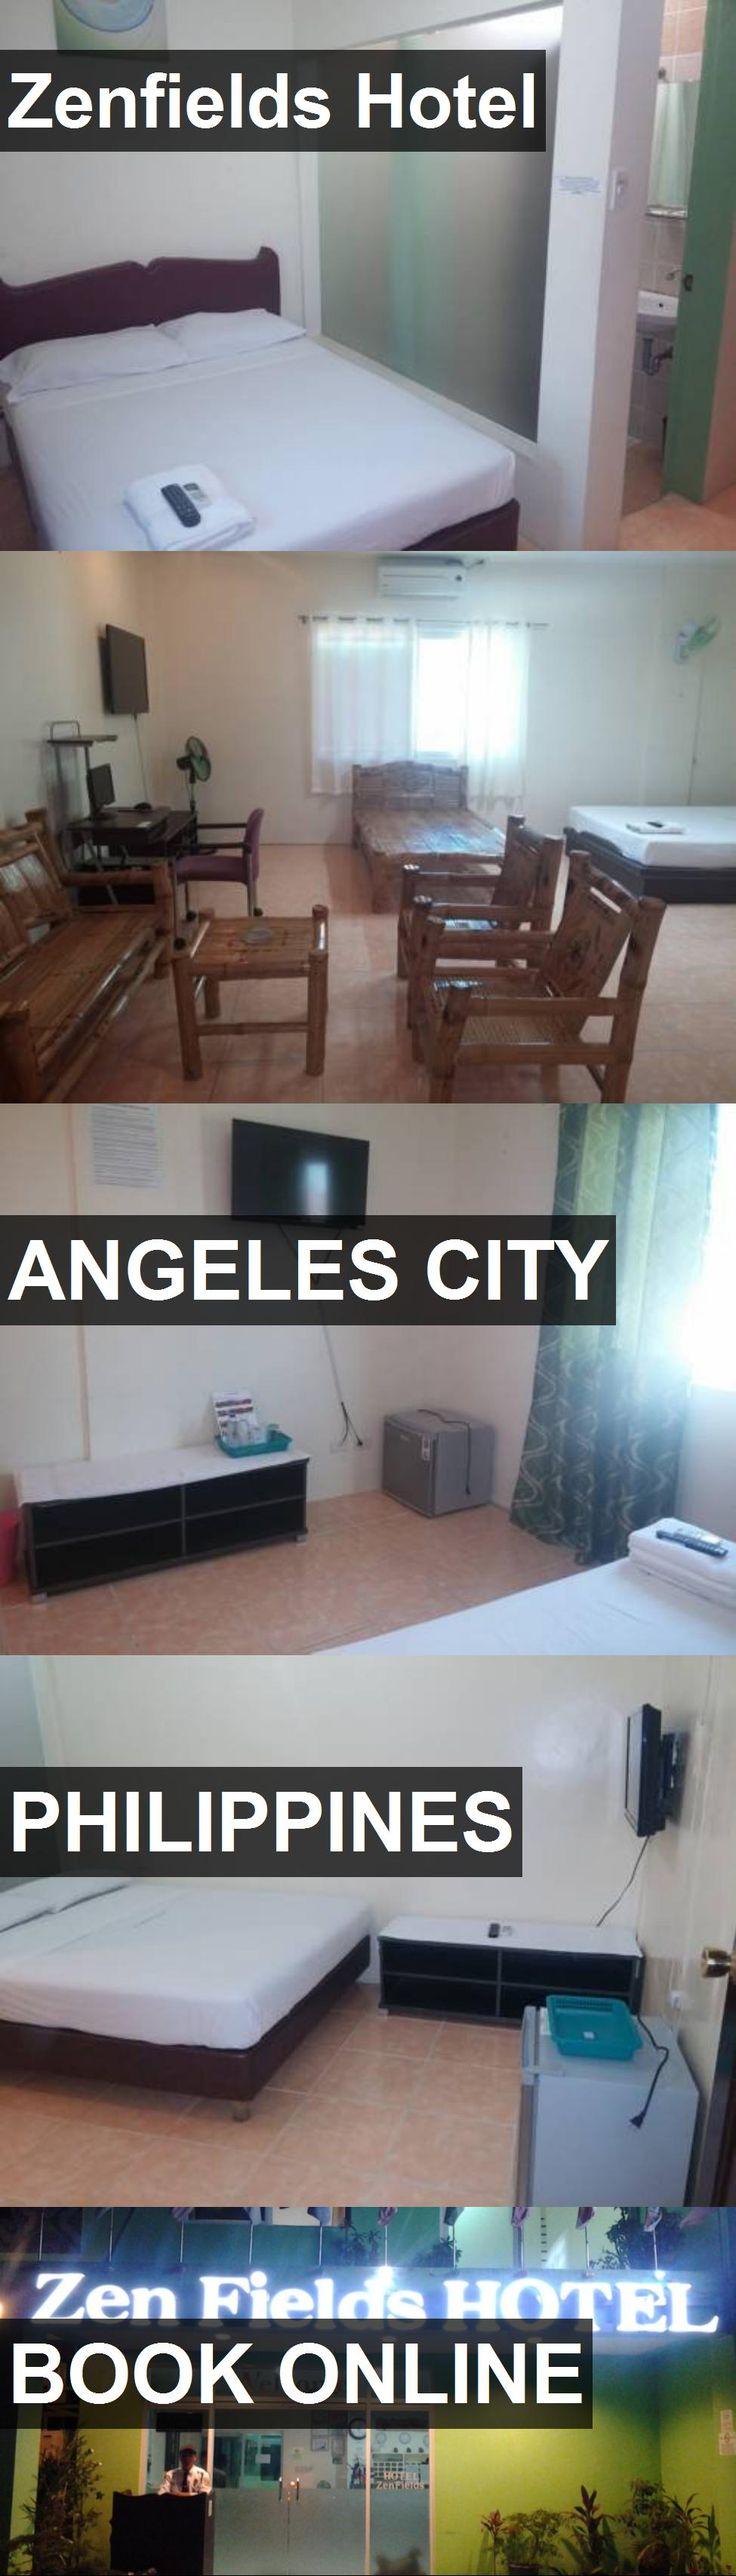 Zenfields Hotel in Angeles City, Philippines. For more information, photos, reviews and best prices please follow the link. #Philippines #AngelesCity #travel #vacation #hotel